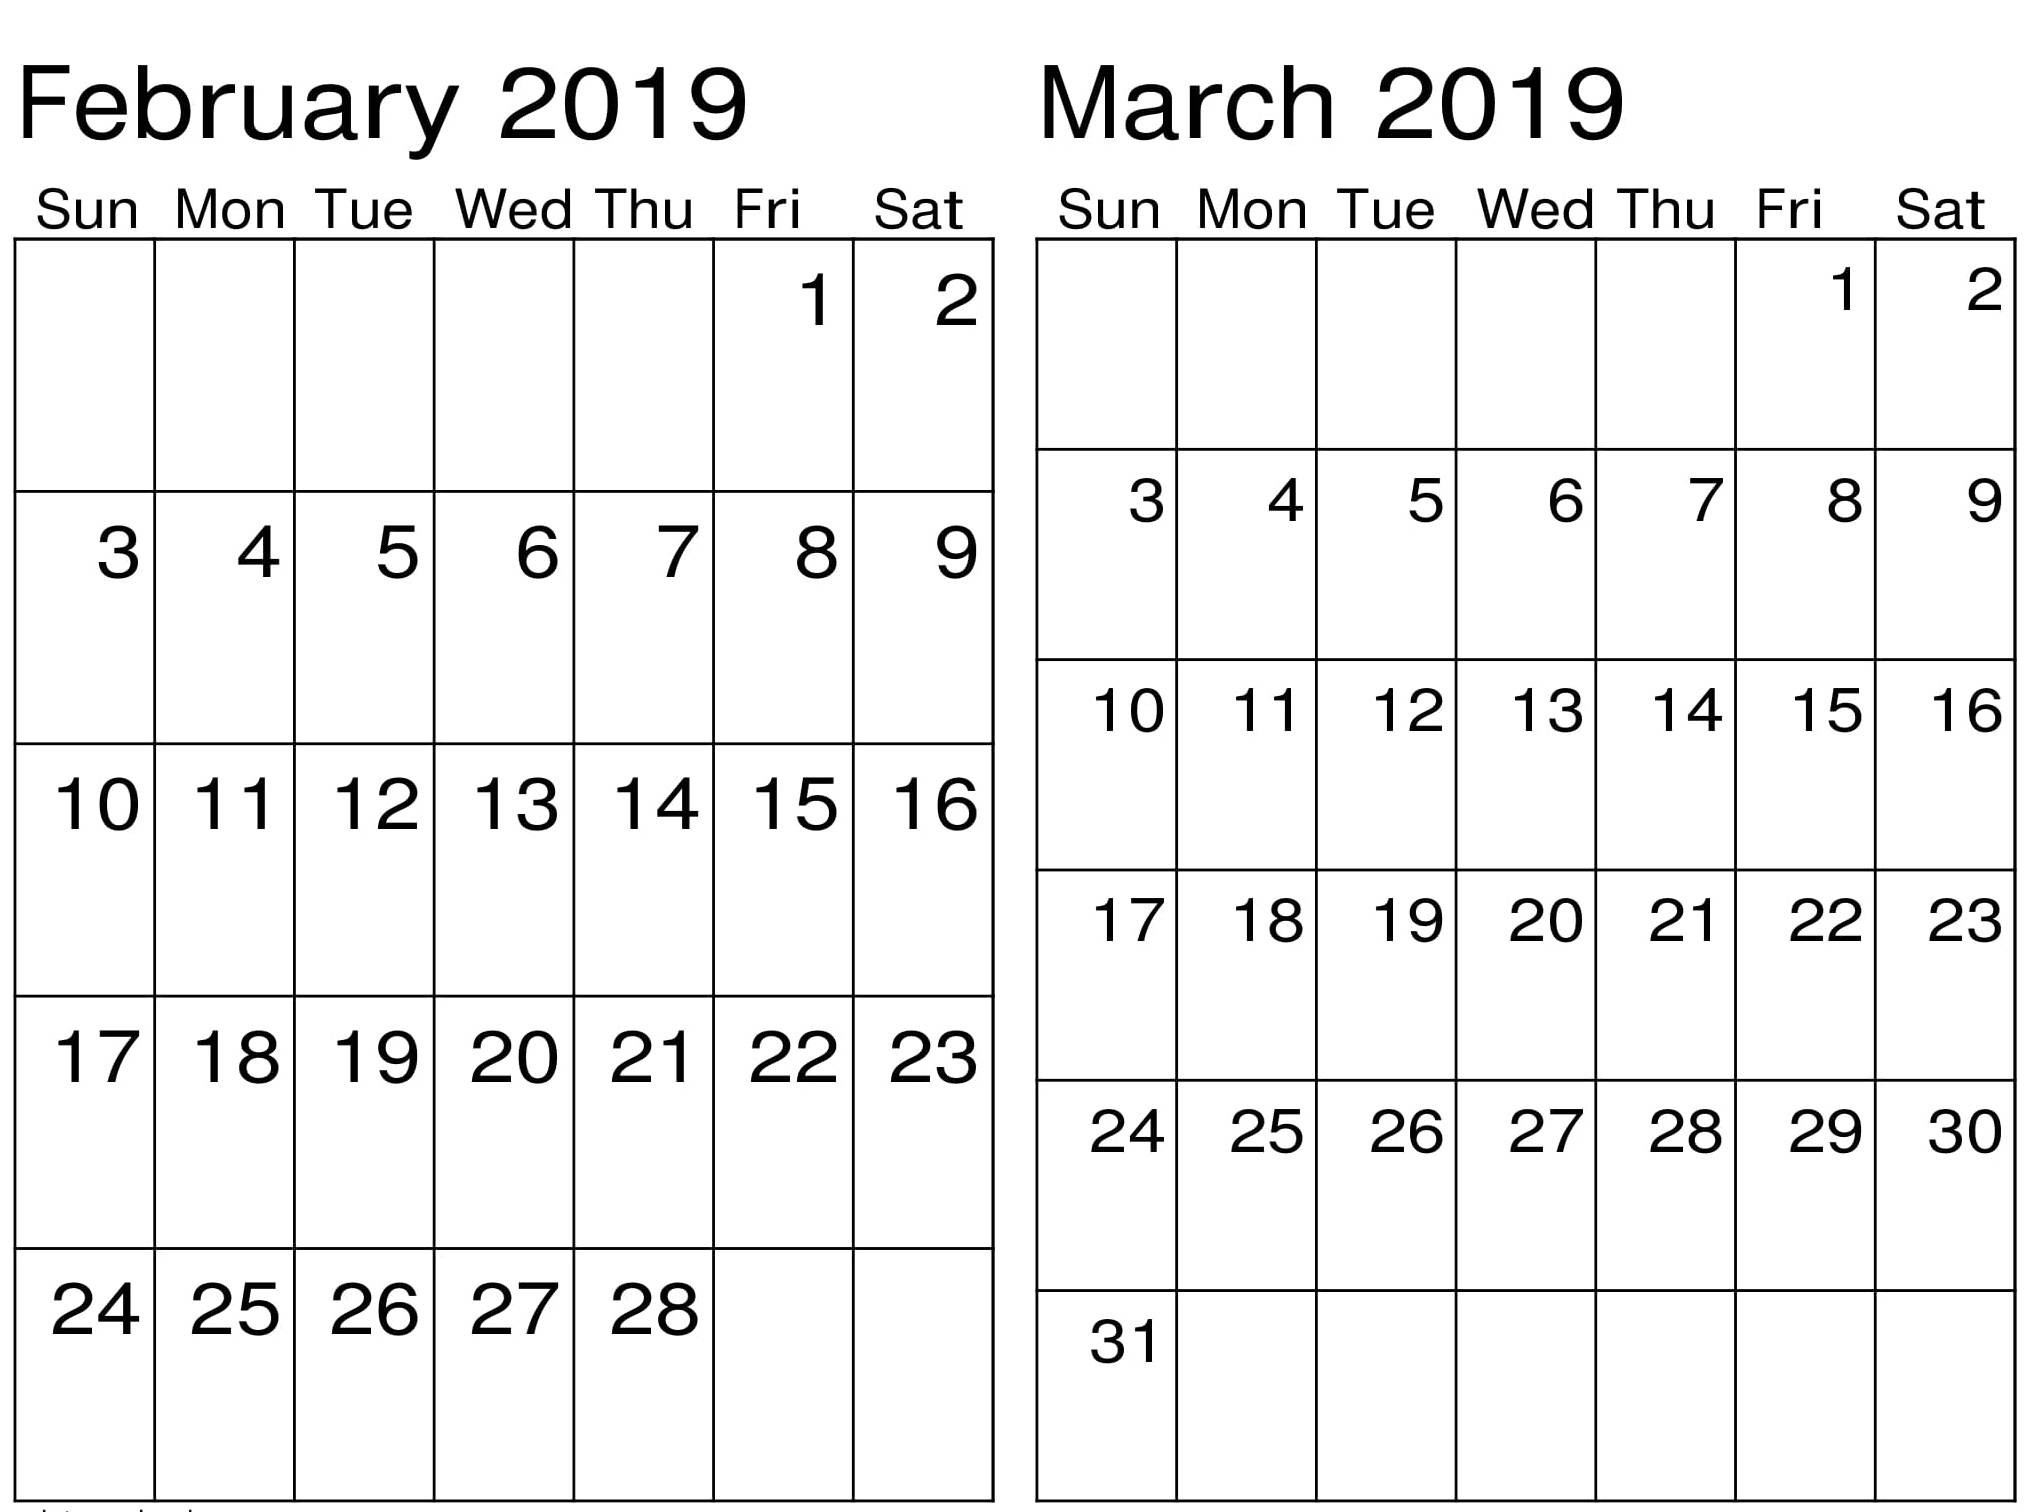 March 2019 Calendar Landscape Actual Tue February and March 2019 Calendar Of March 2019 Calendar Landscape Más Recientemente Liberado December 2019 Calendar